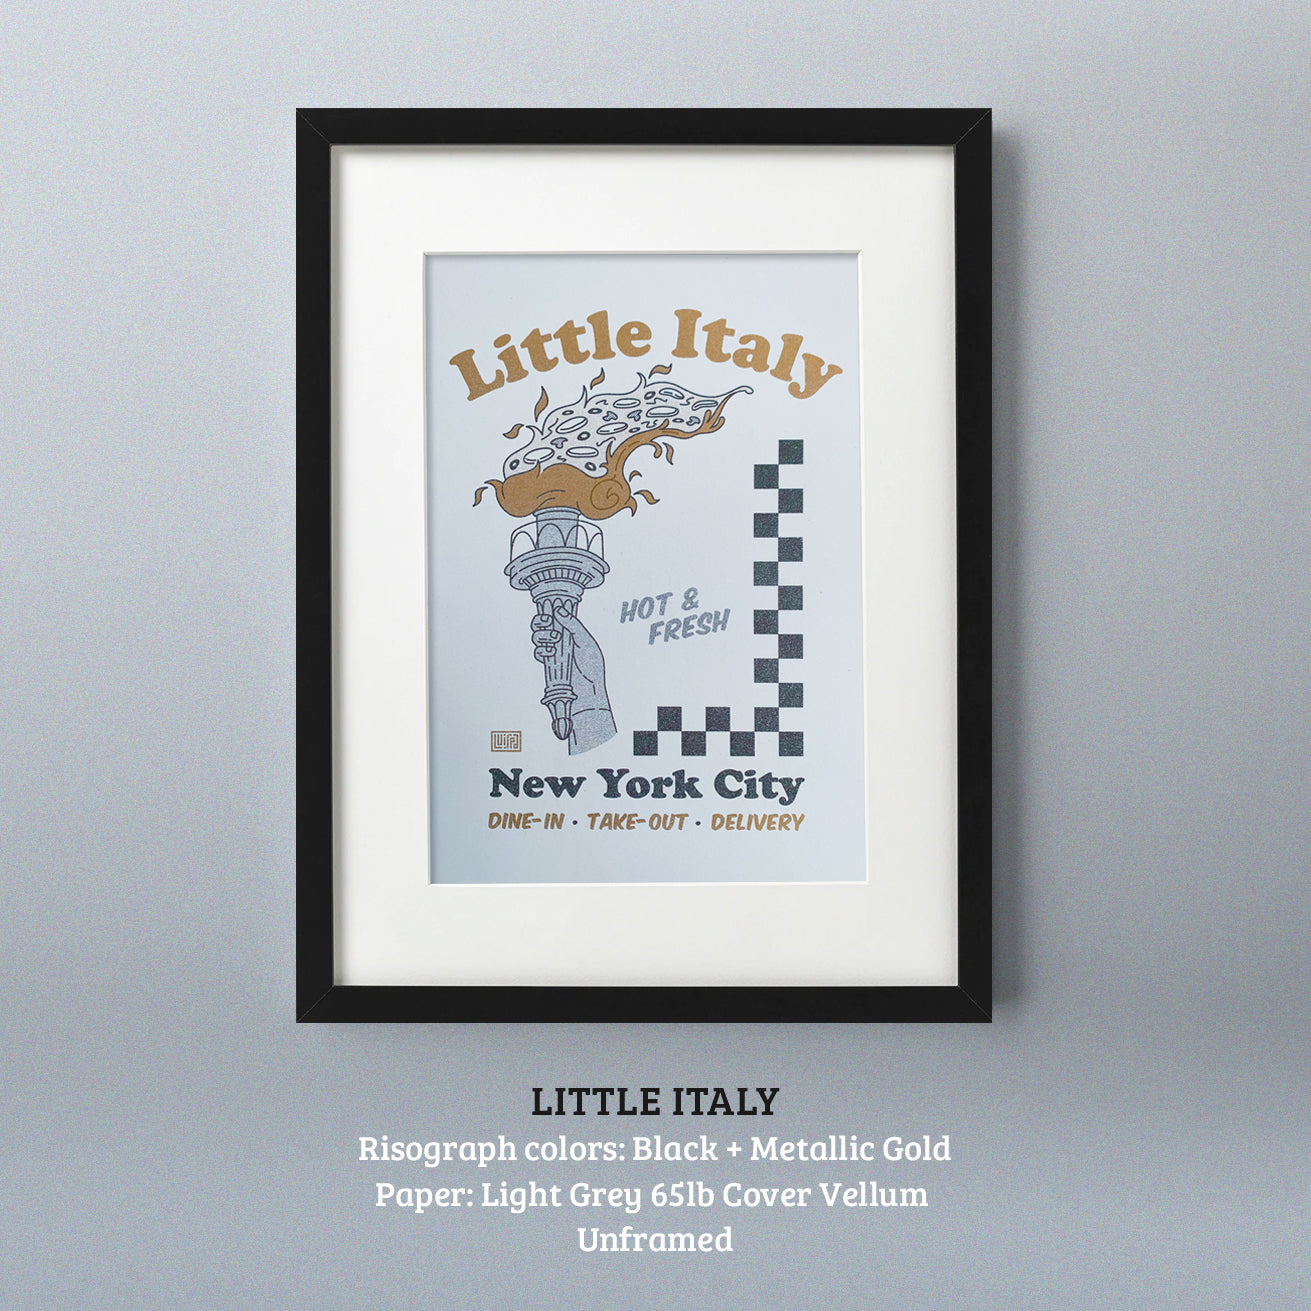 Little Italy Risograph Print by Lulab